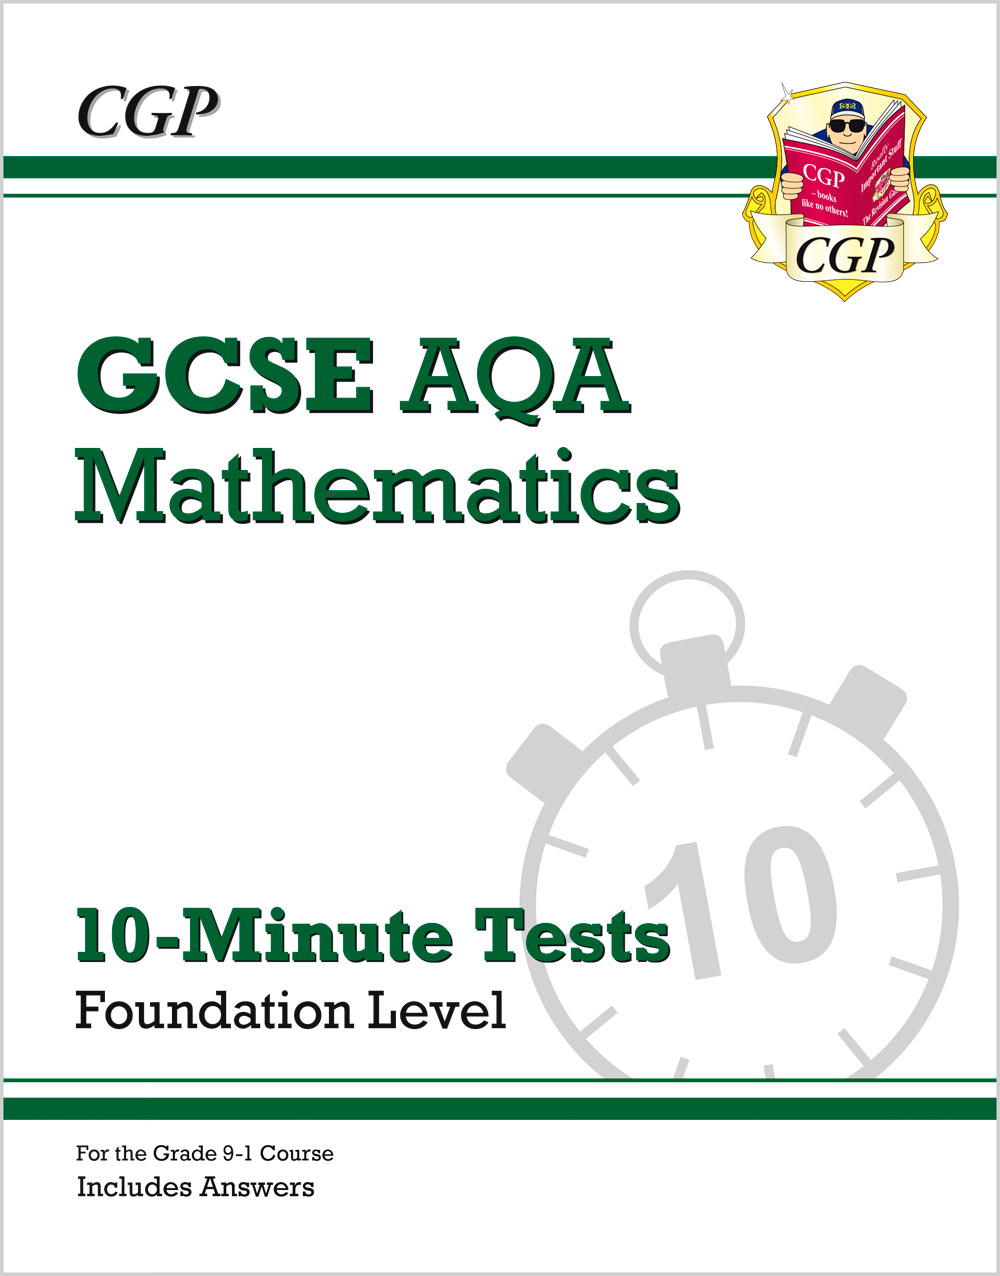 MQFXP41 - Grade 9-1 GCSE Maths AQA 10-Minute Tests - Foundation (includes Answers)